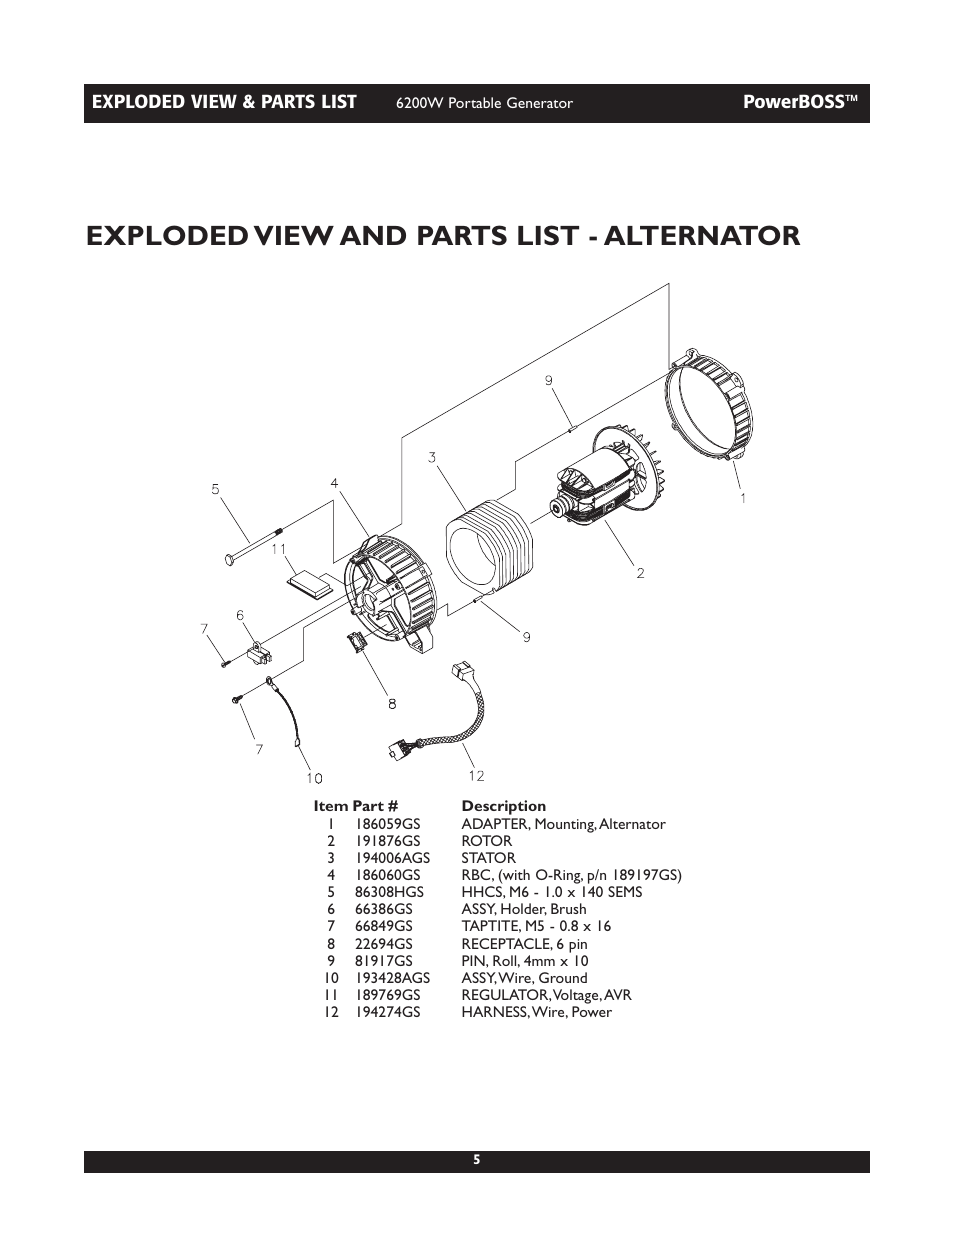 6 5 Briggs And Stratton Parts Diagram Electrical Wiring Diagrams 10 Hp Engine Exploded View List Alternator Throttle